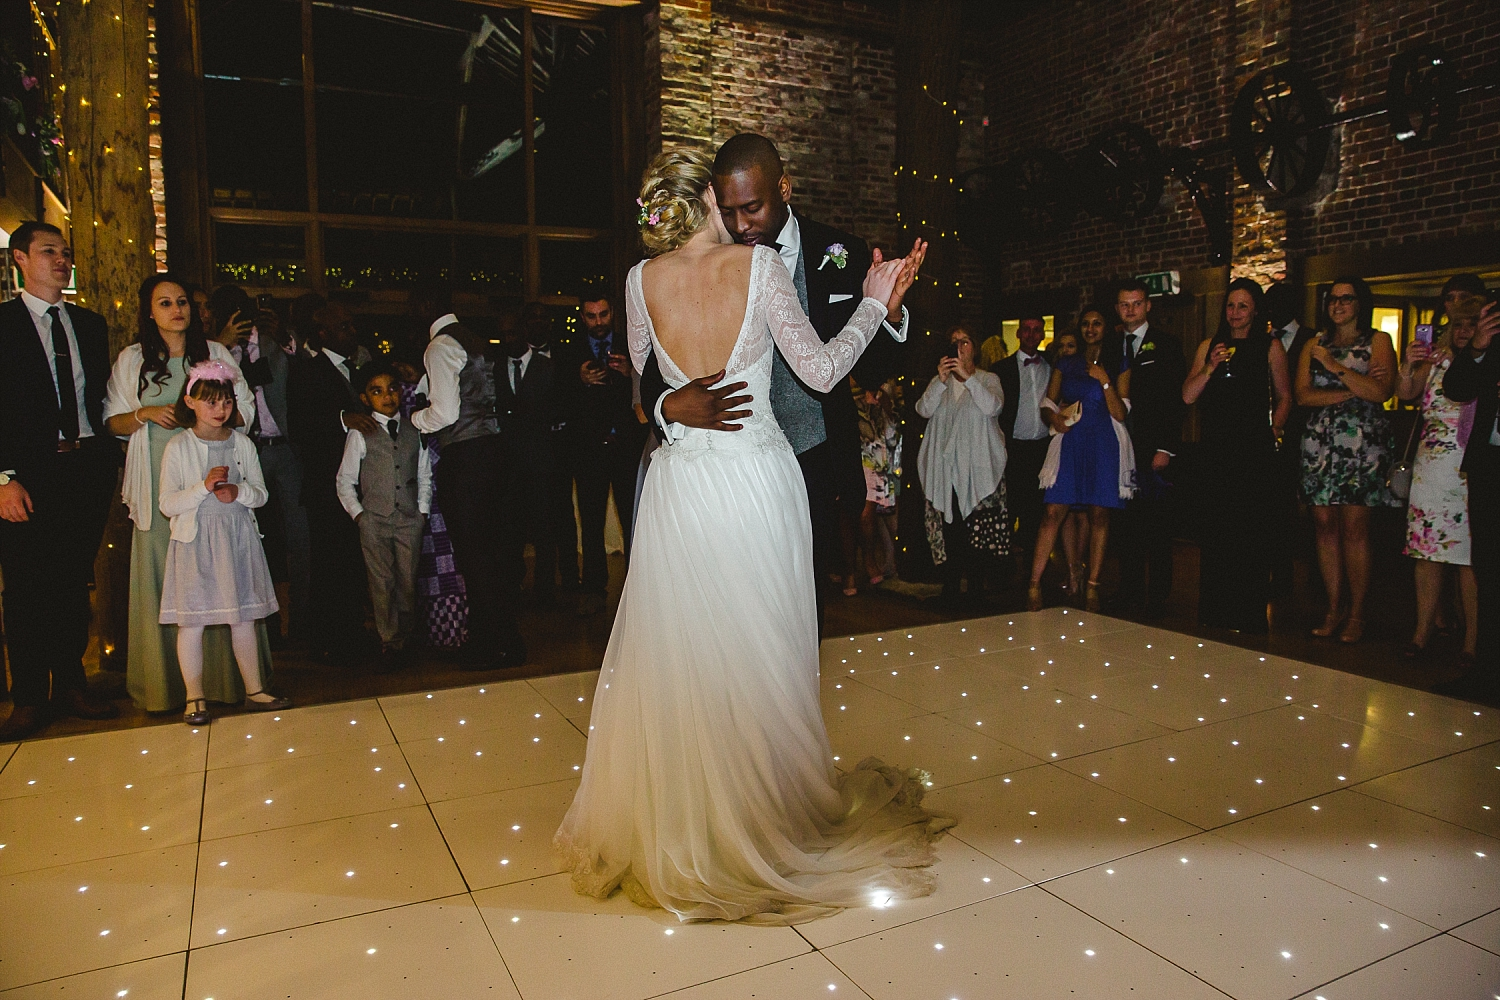 Gaynes Park Wedding Photographer - First Dance